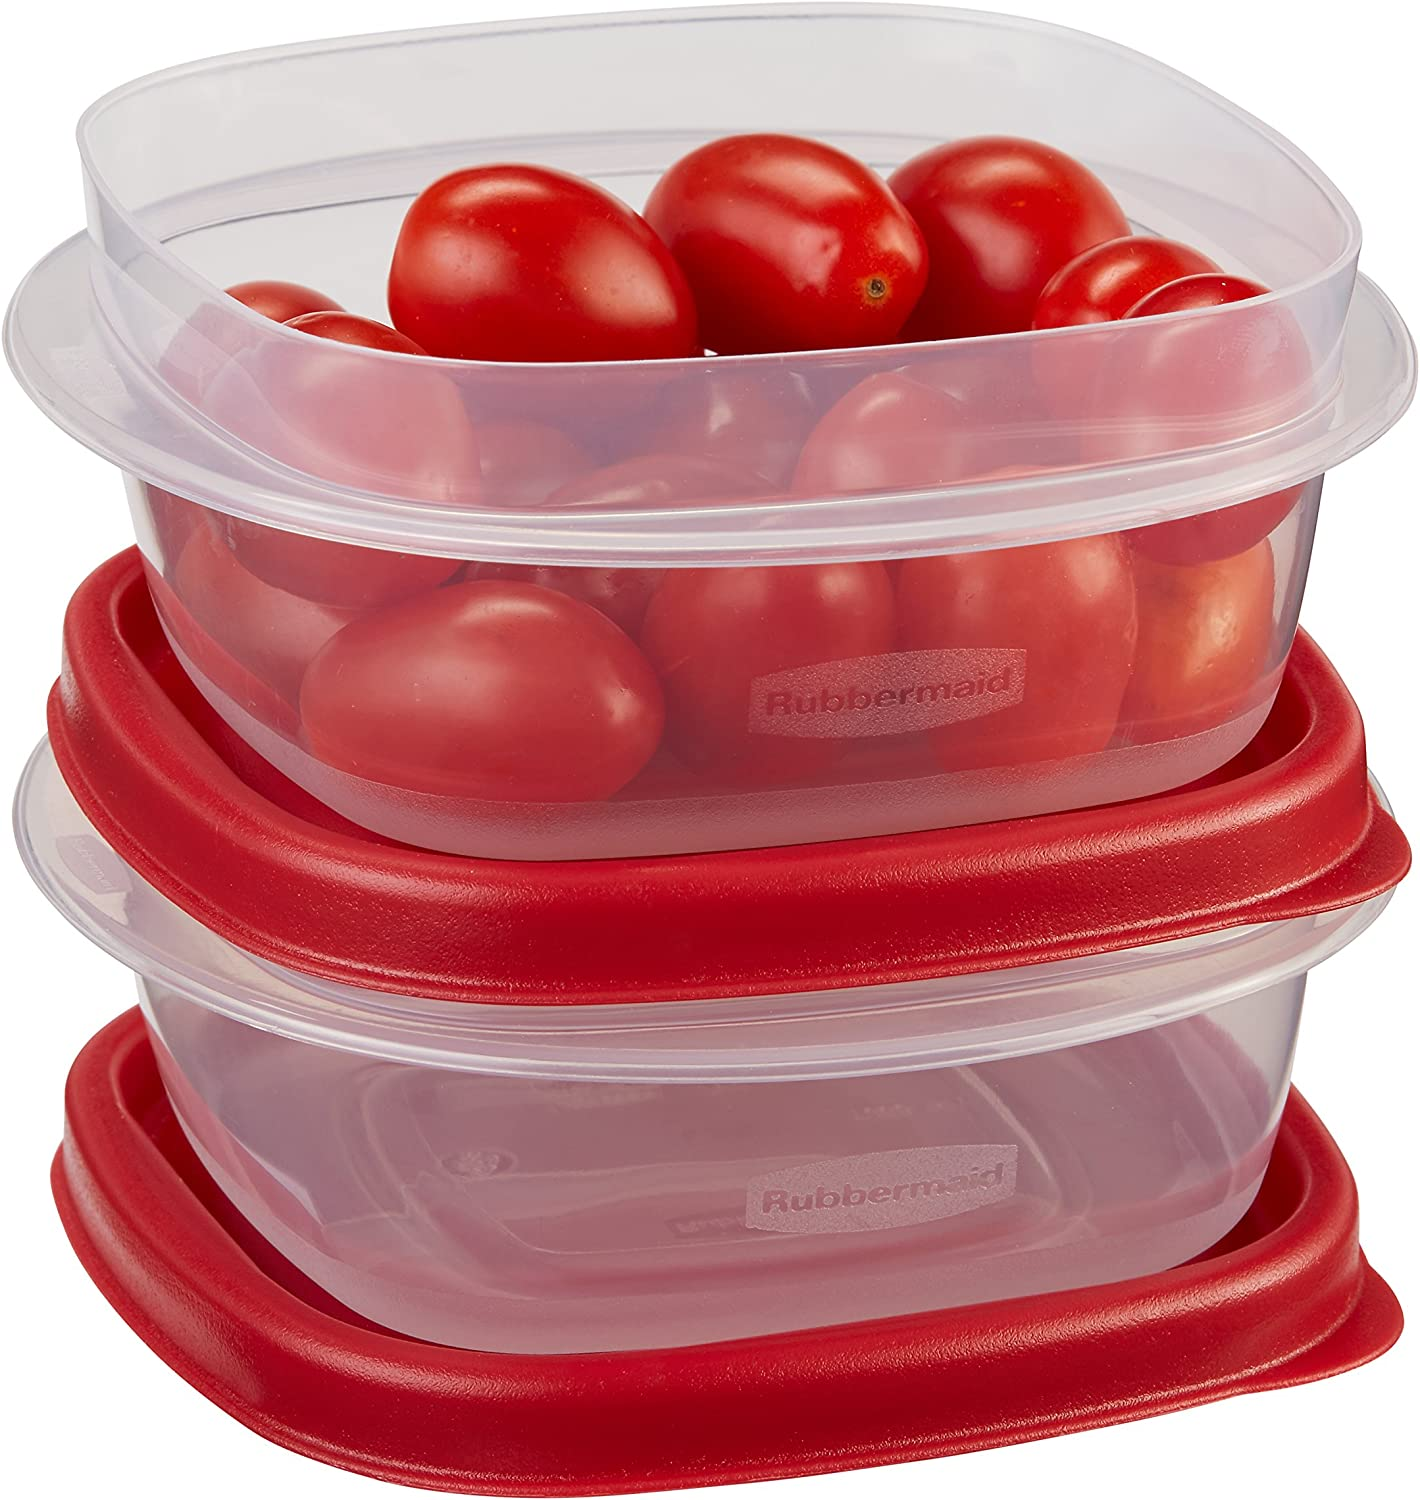 Rubbermaid Easy Find Lids Food Storage Containers, 1.25 Cup, Racer Red, 4-Piece Set 1777183